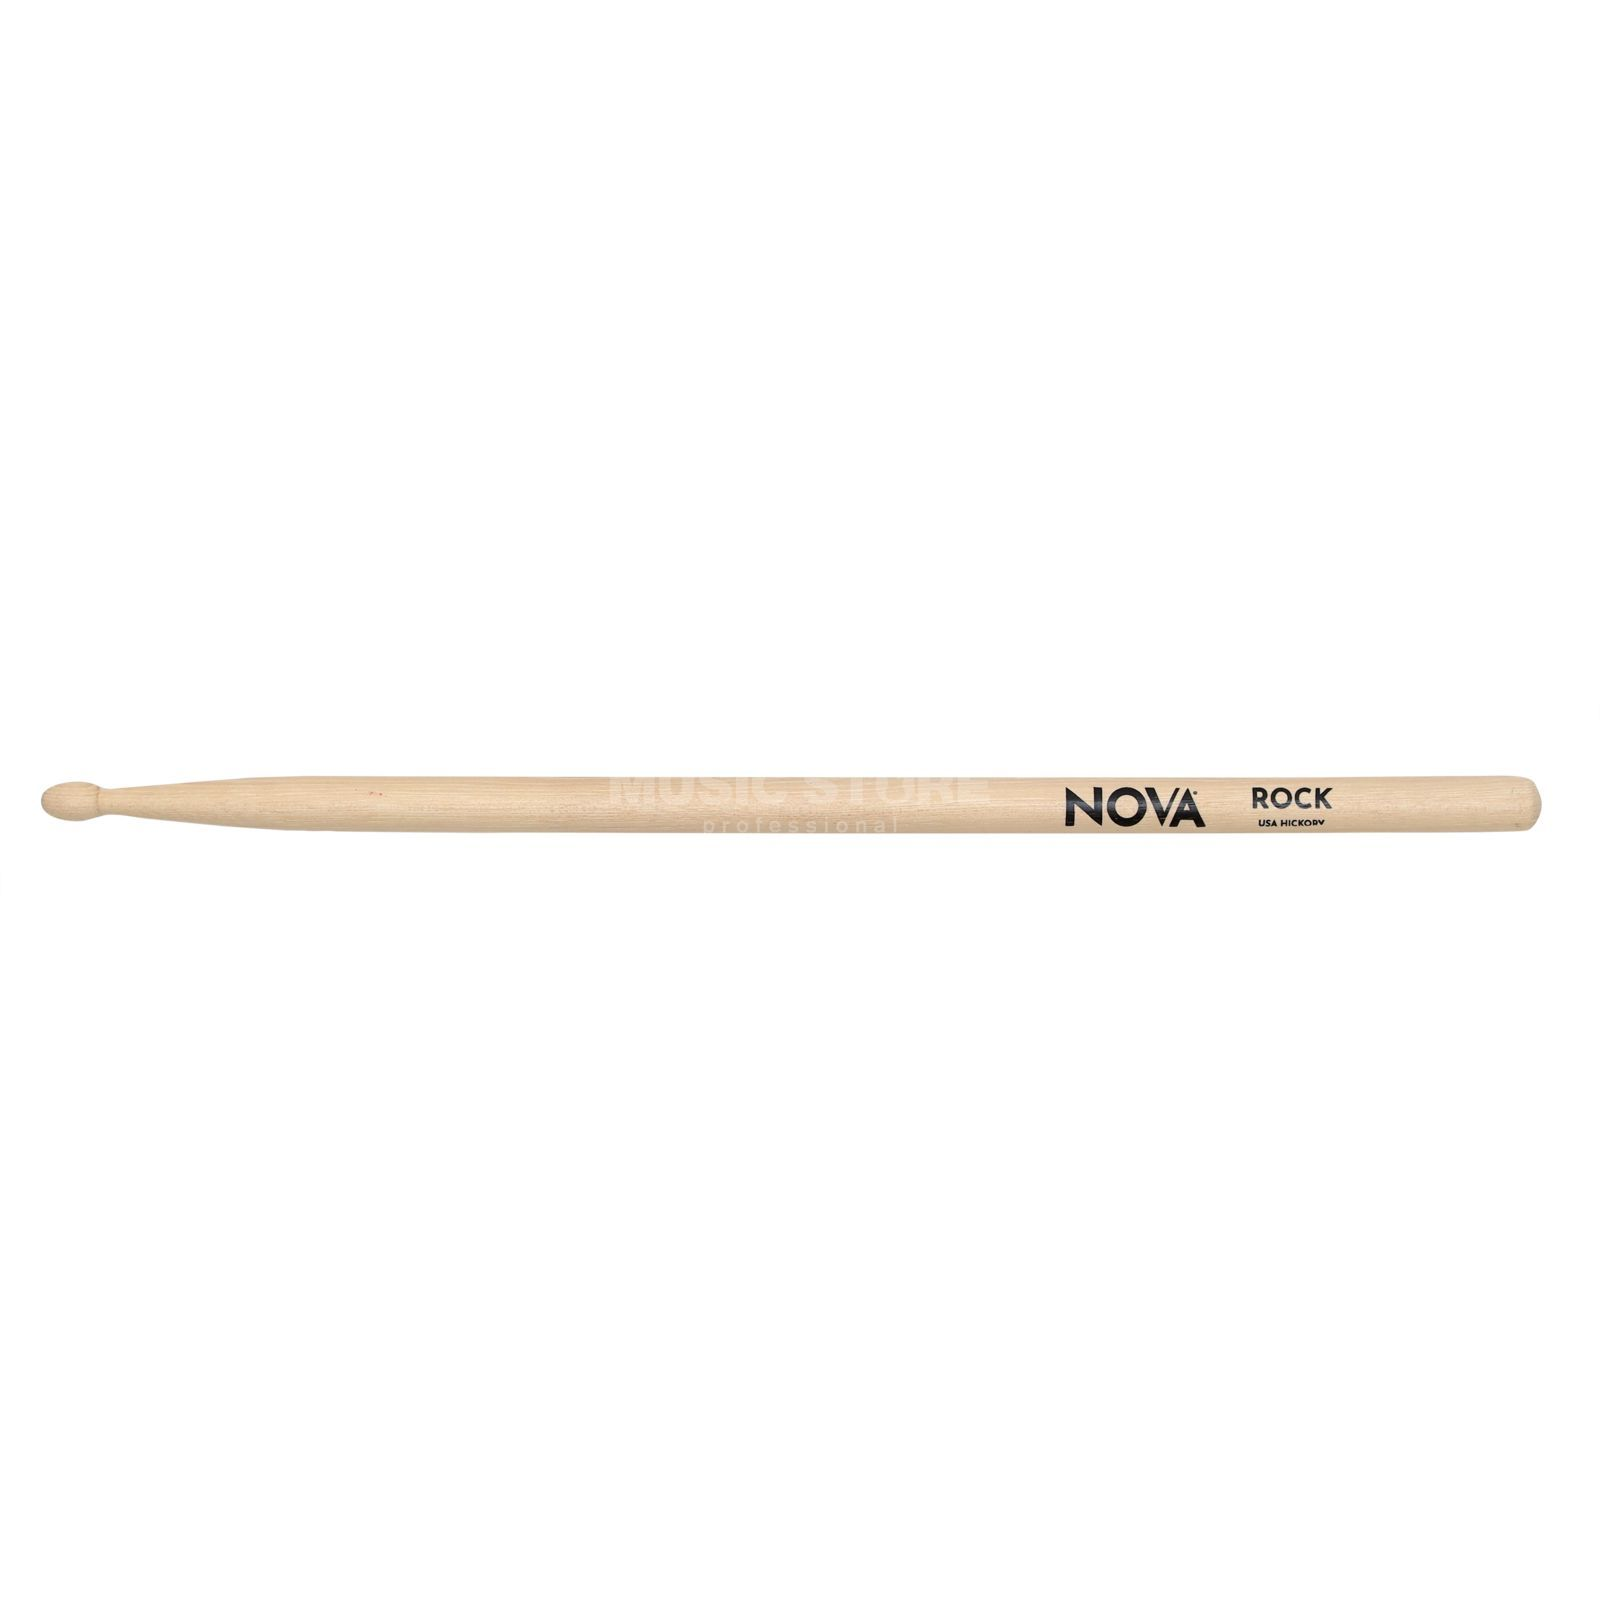 Vic-Firth Nova Drum Sticks ROCK, Wood Tip Produktbillede